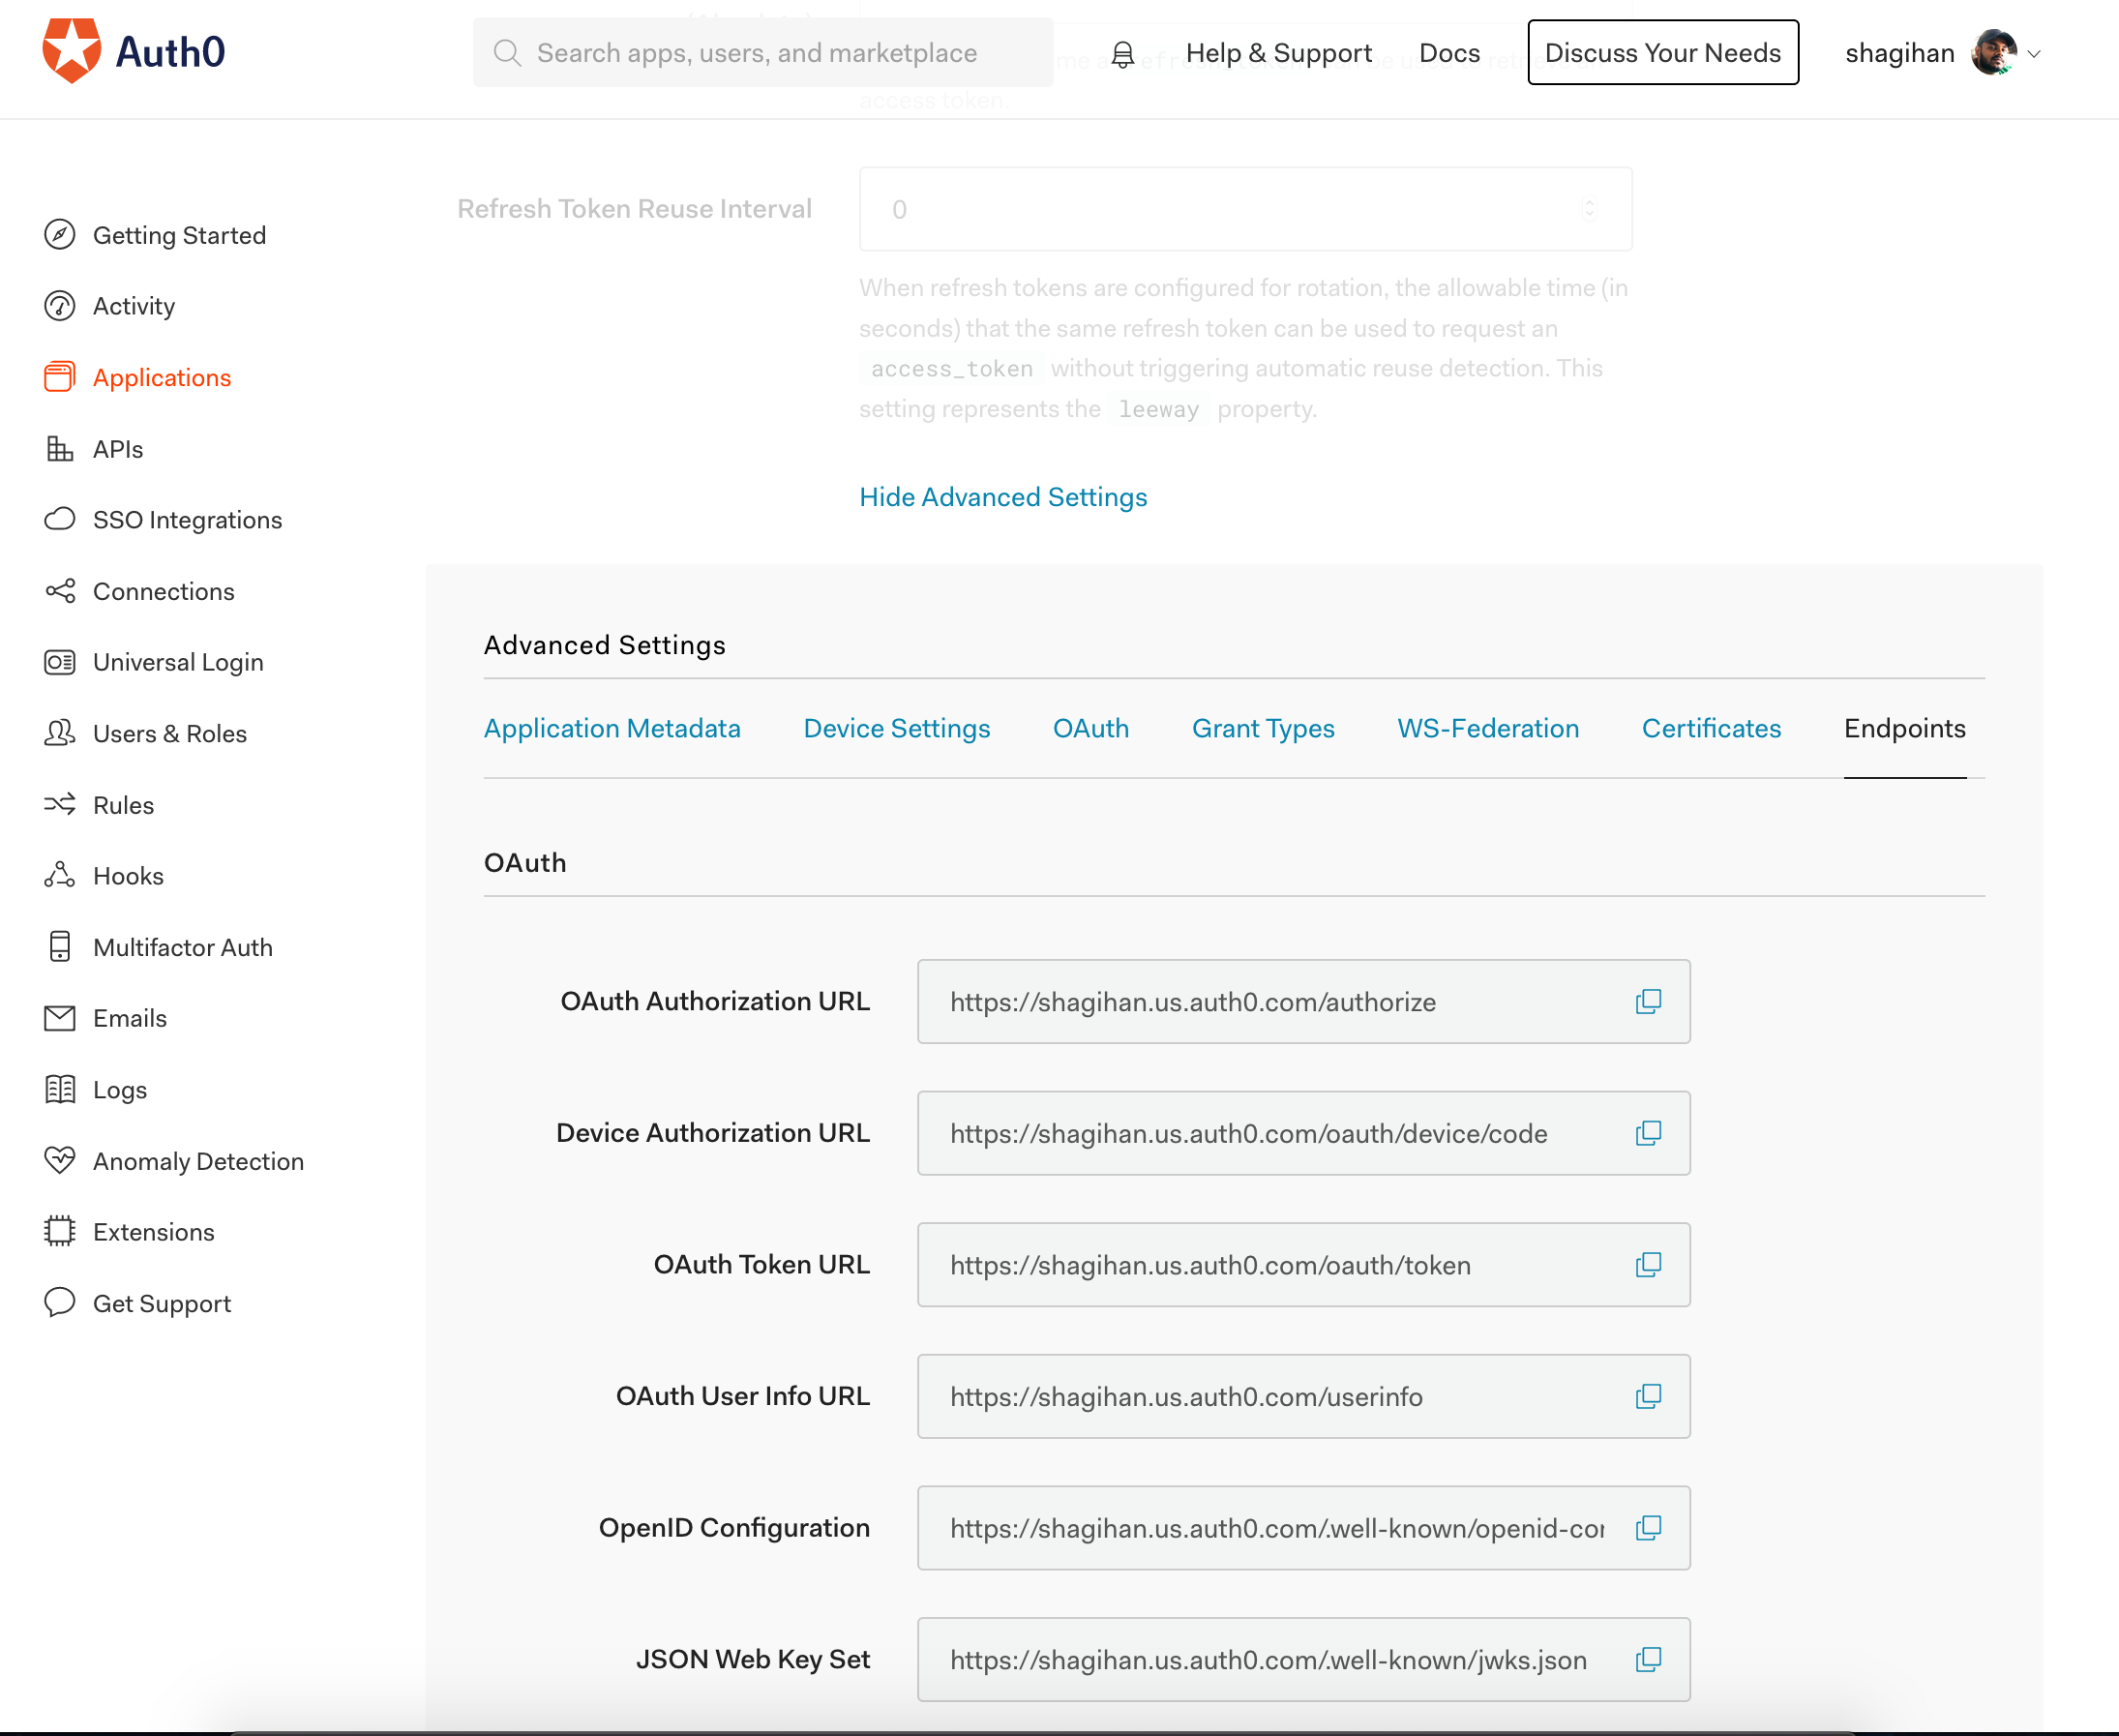 auth0 endpoints